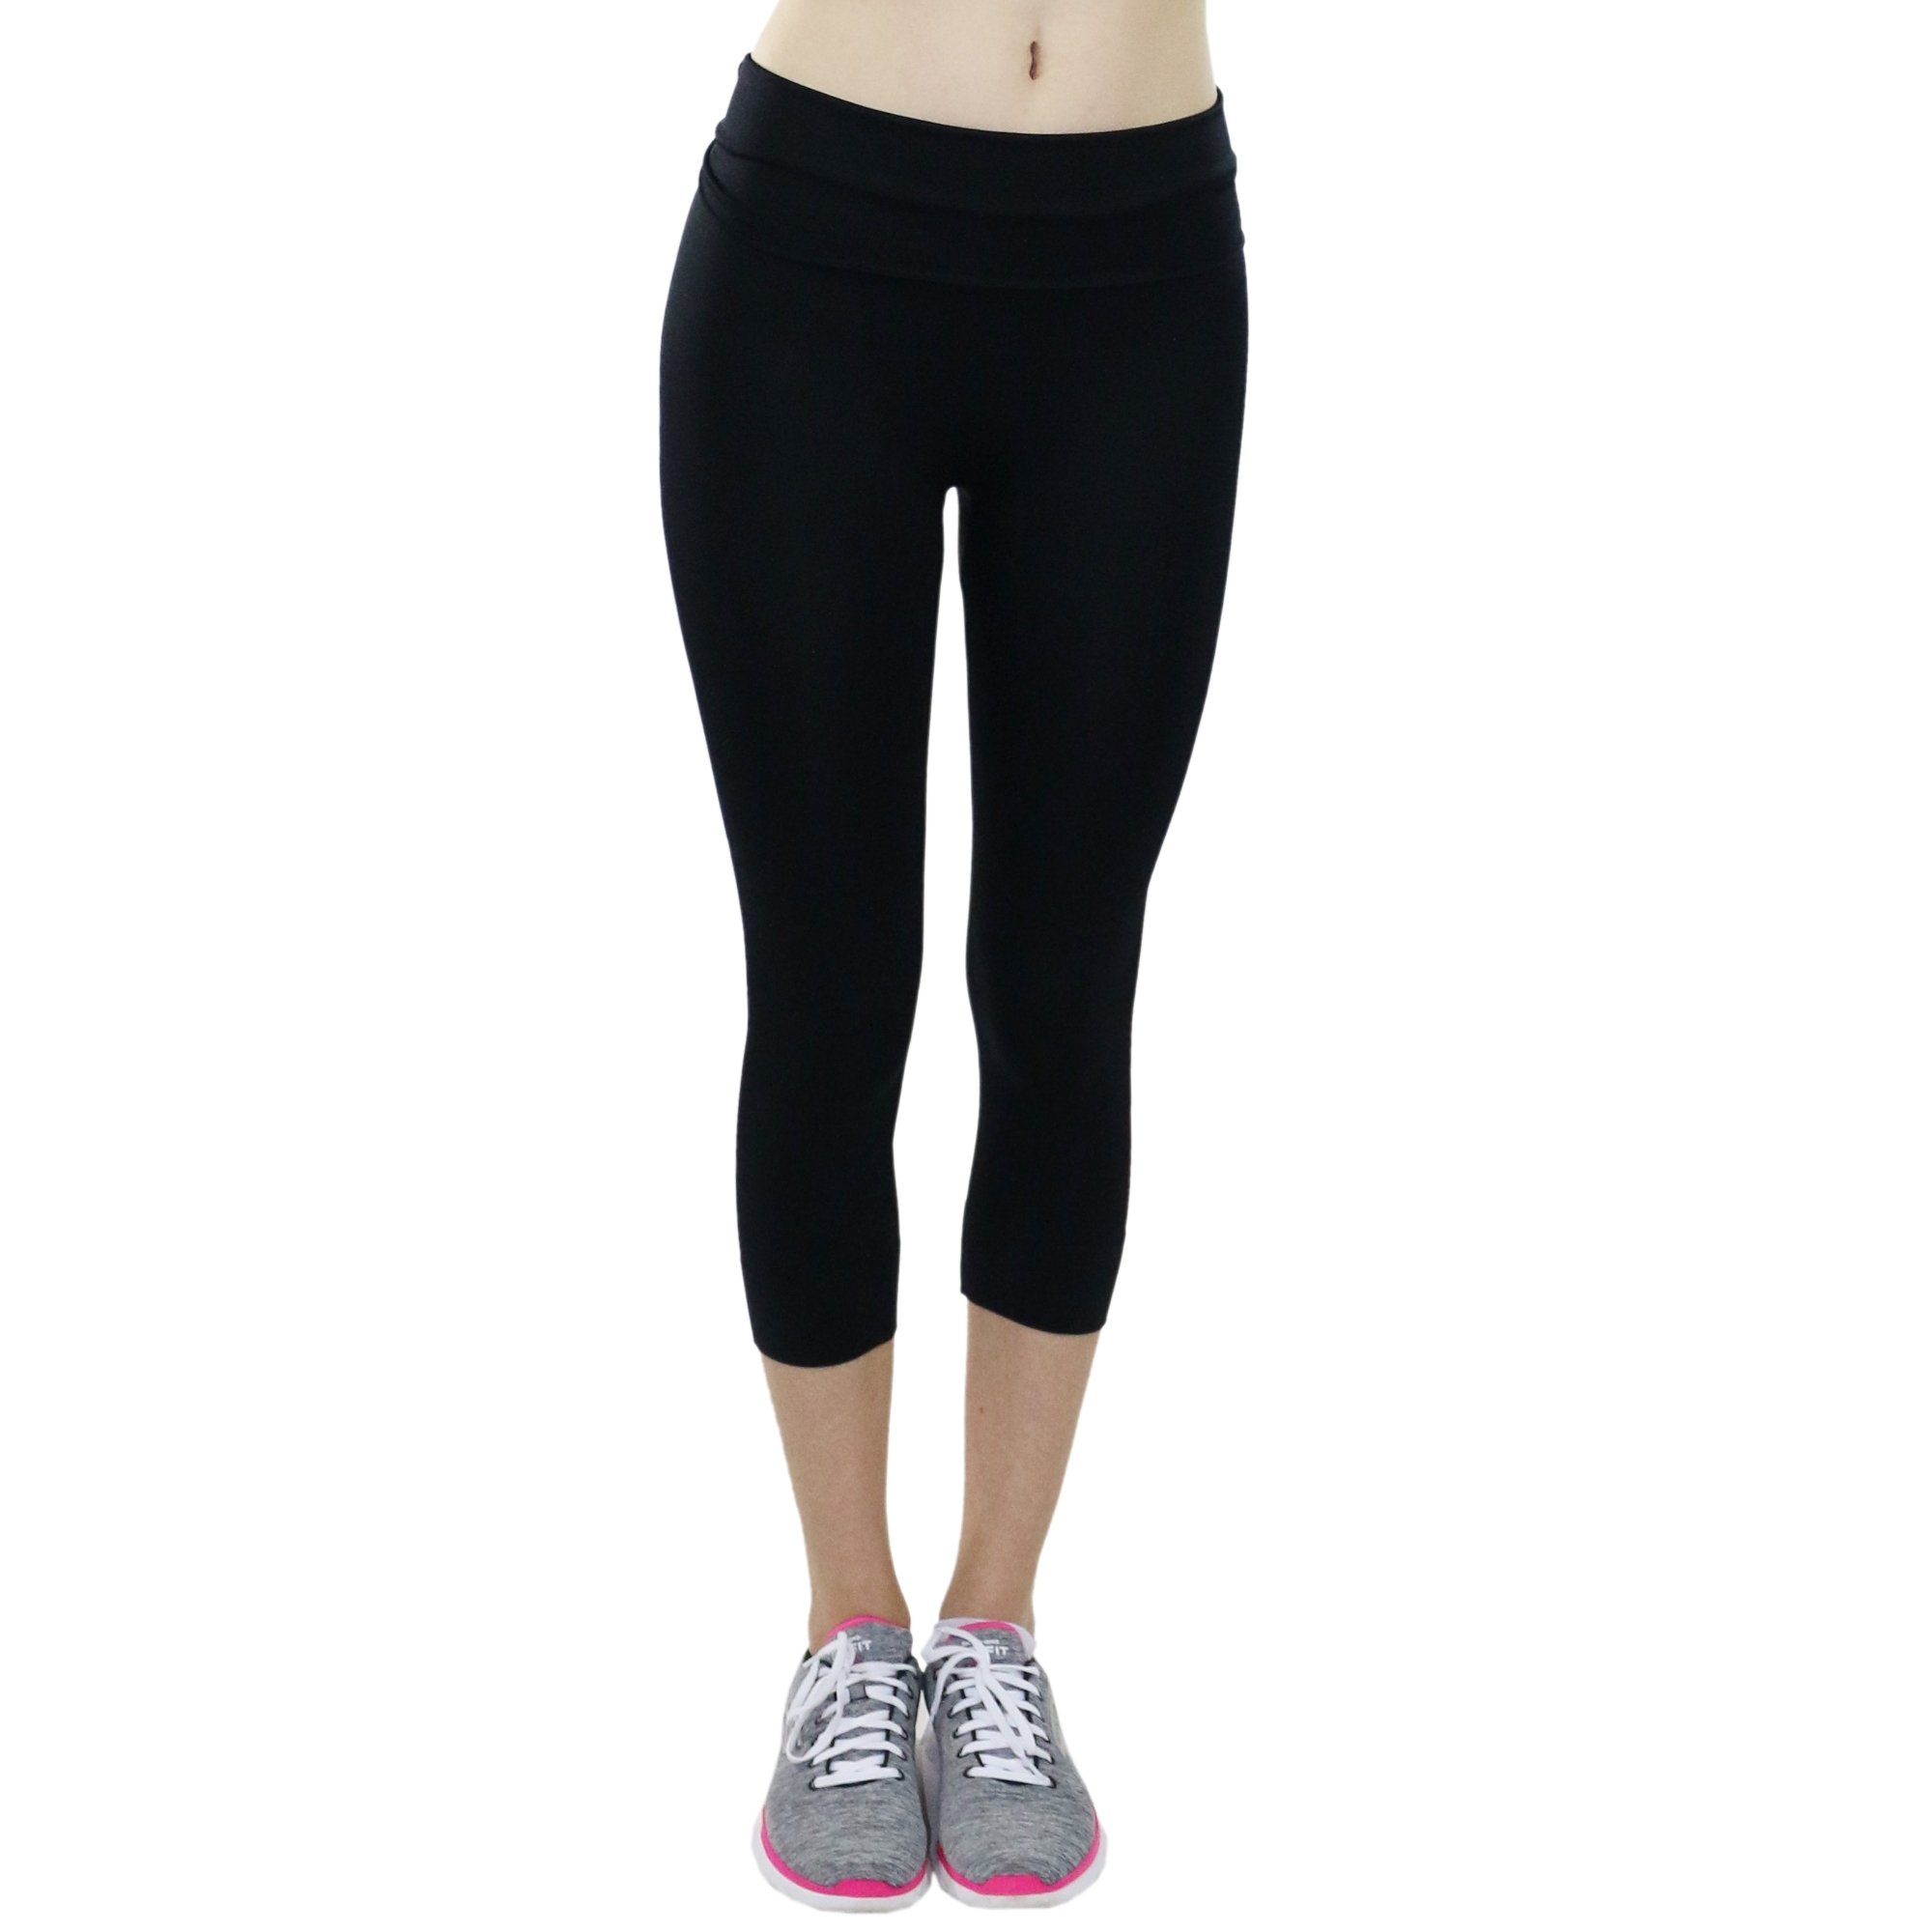 Fitcue Women's High Waist Actuve-Fit Sports Capri